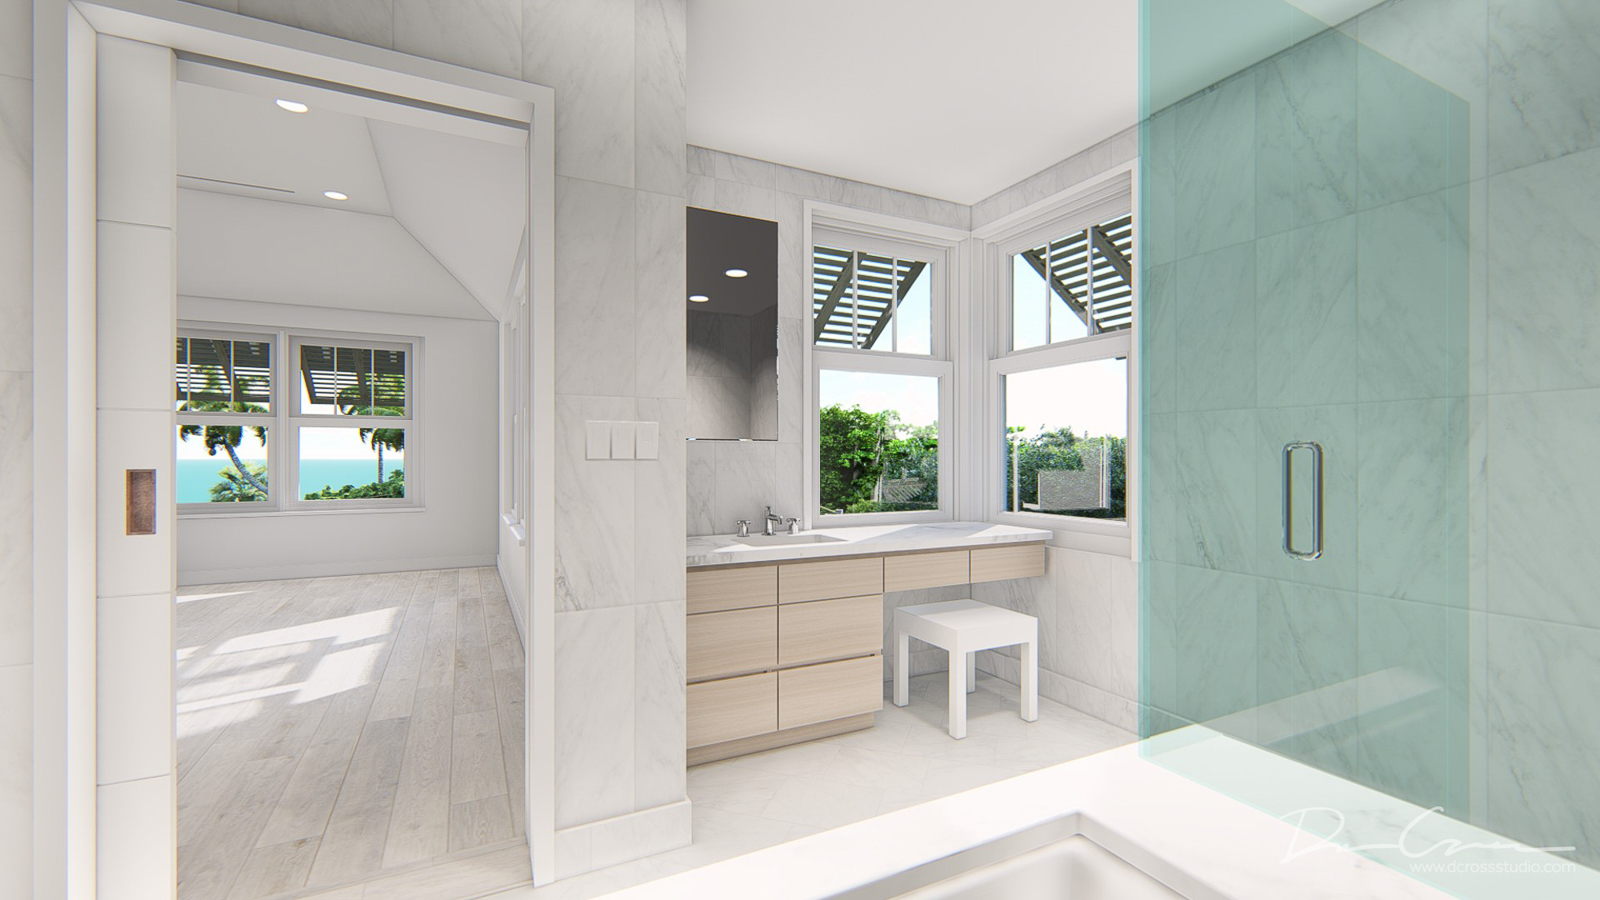 Bathroom 1 - Window View.jpg